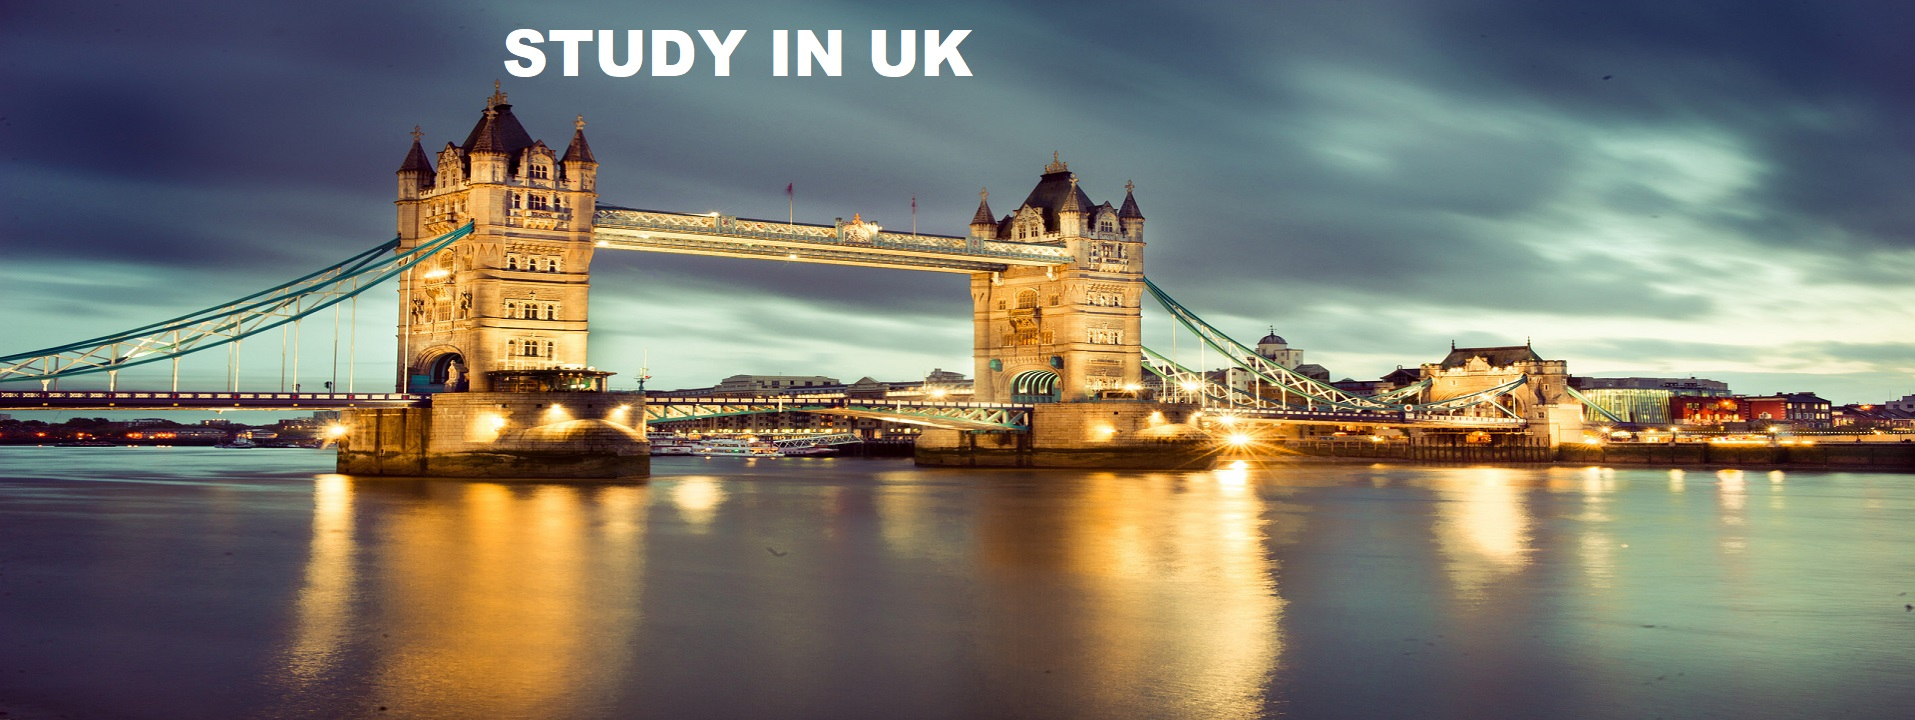 a study in UK from India | Want to Study In UK | Study Options in the UK for Indian students | study in UK from India cost | Cost Of Living in United Kingdom | study abroad UK university | study abroad opportunities in UK | Study Abroad in England | Study Abroad in the United Kingdom | Study and work outside the UK